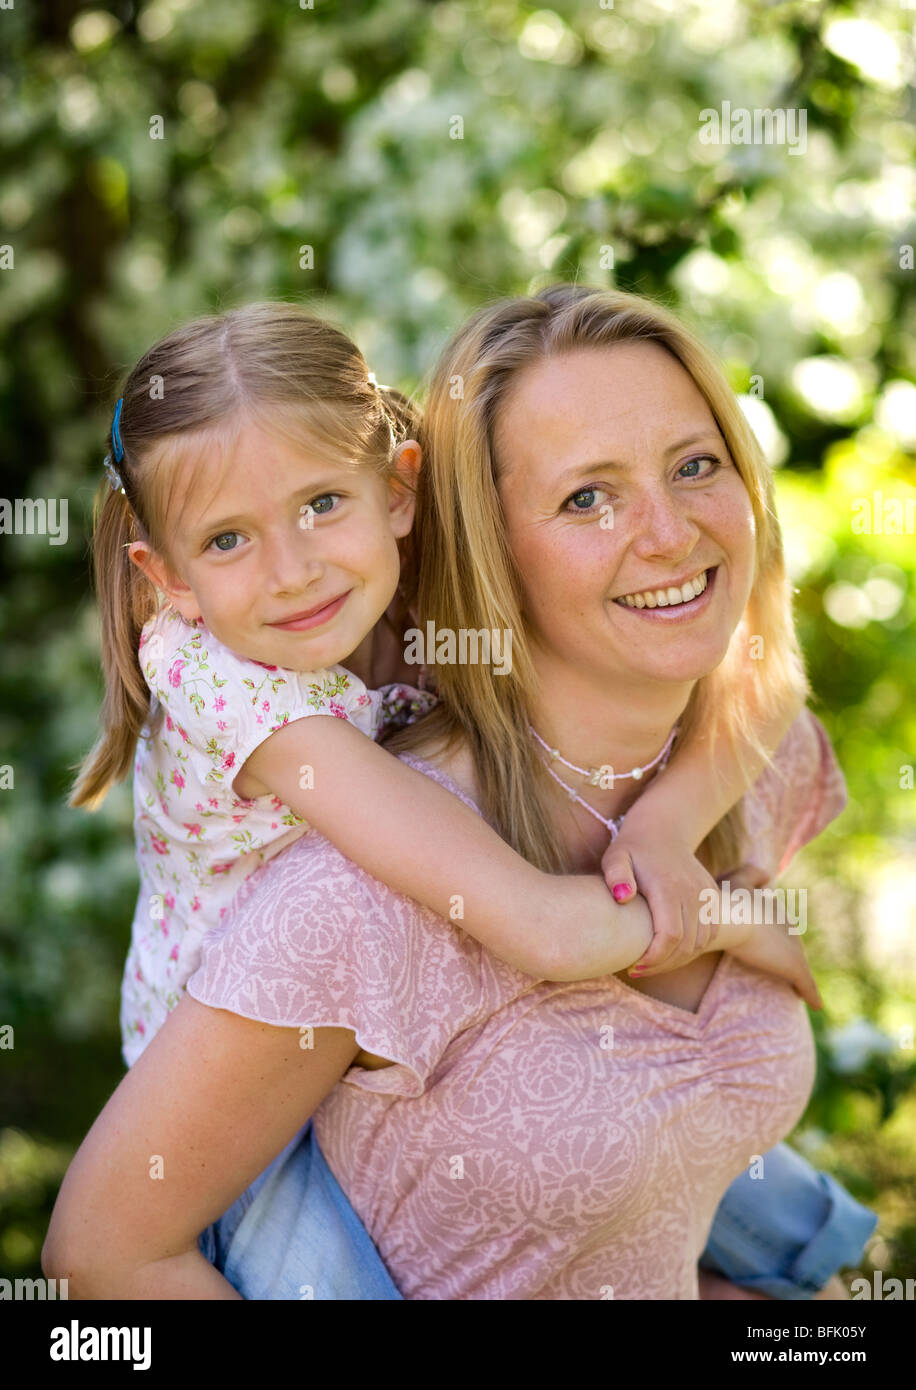 Mother and daughter, Sweden. - Stock Image